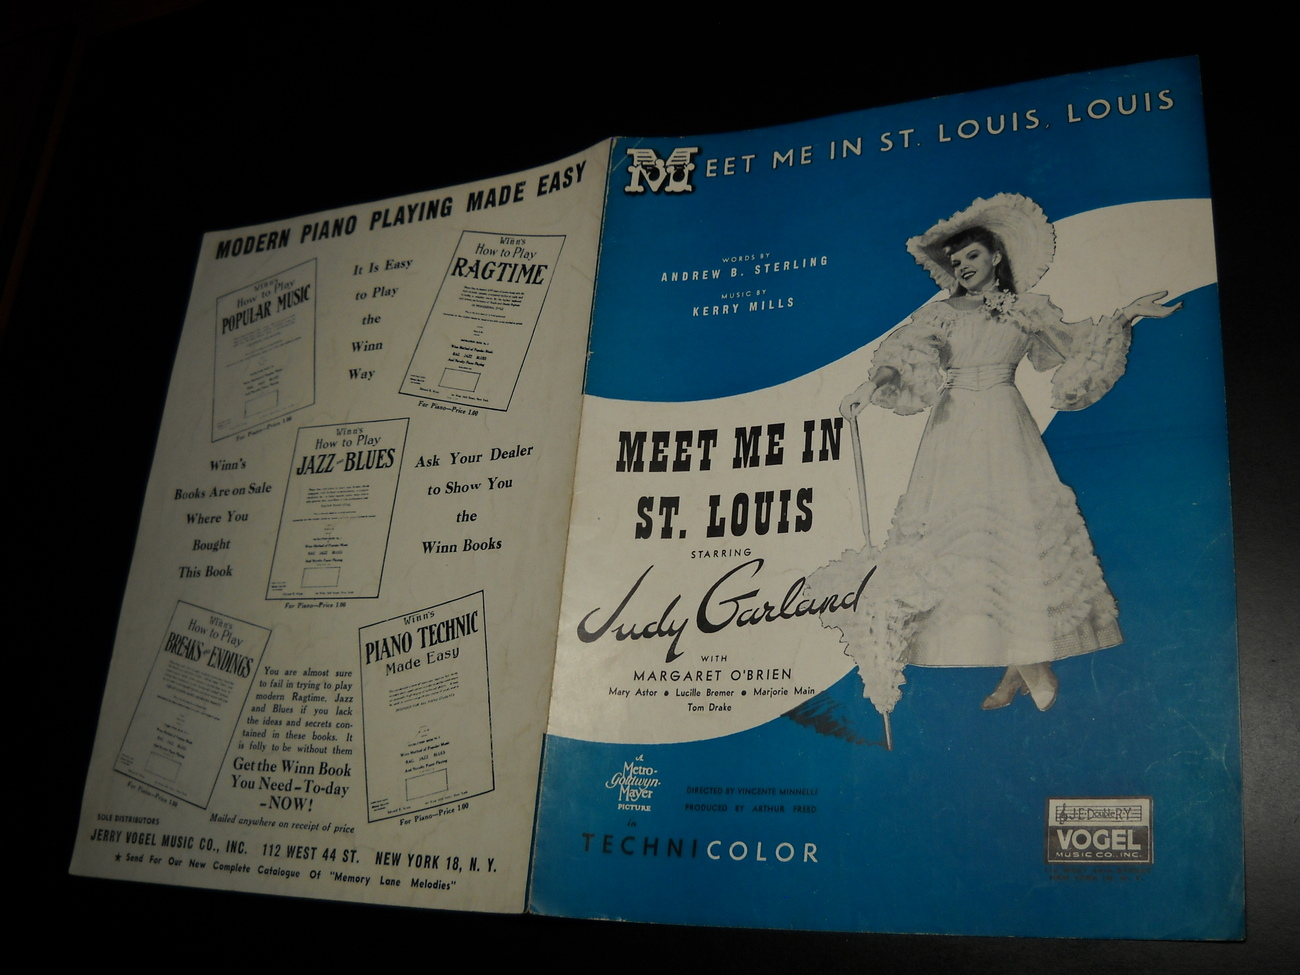 Sheet_music_meet_me_in_st_louis_louis_judy_garland_1935_vogel_music_04